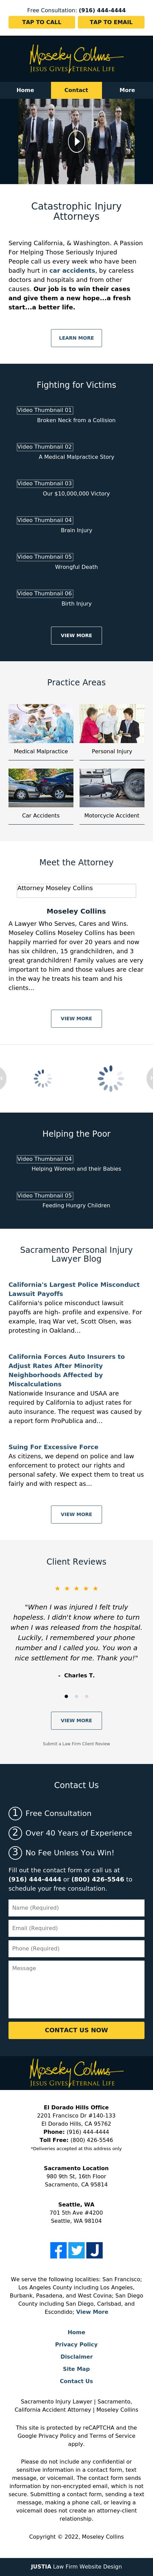 Moseley Collins - San Francisco CA Lawyers